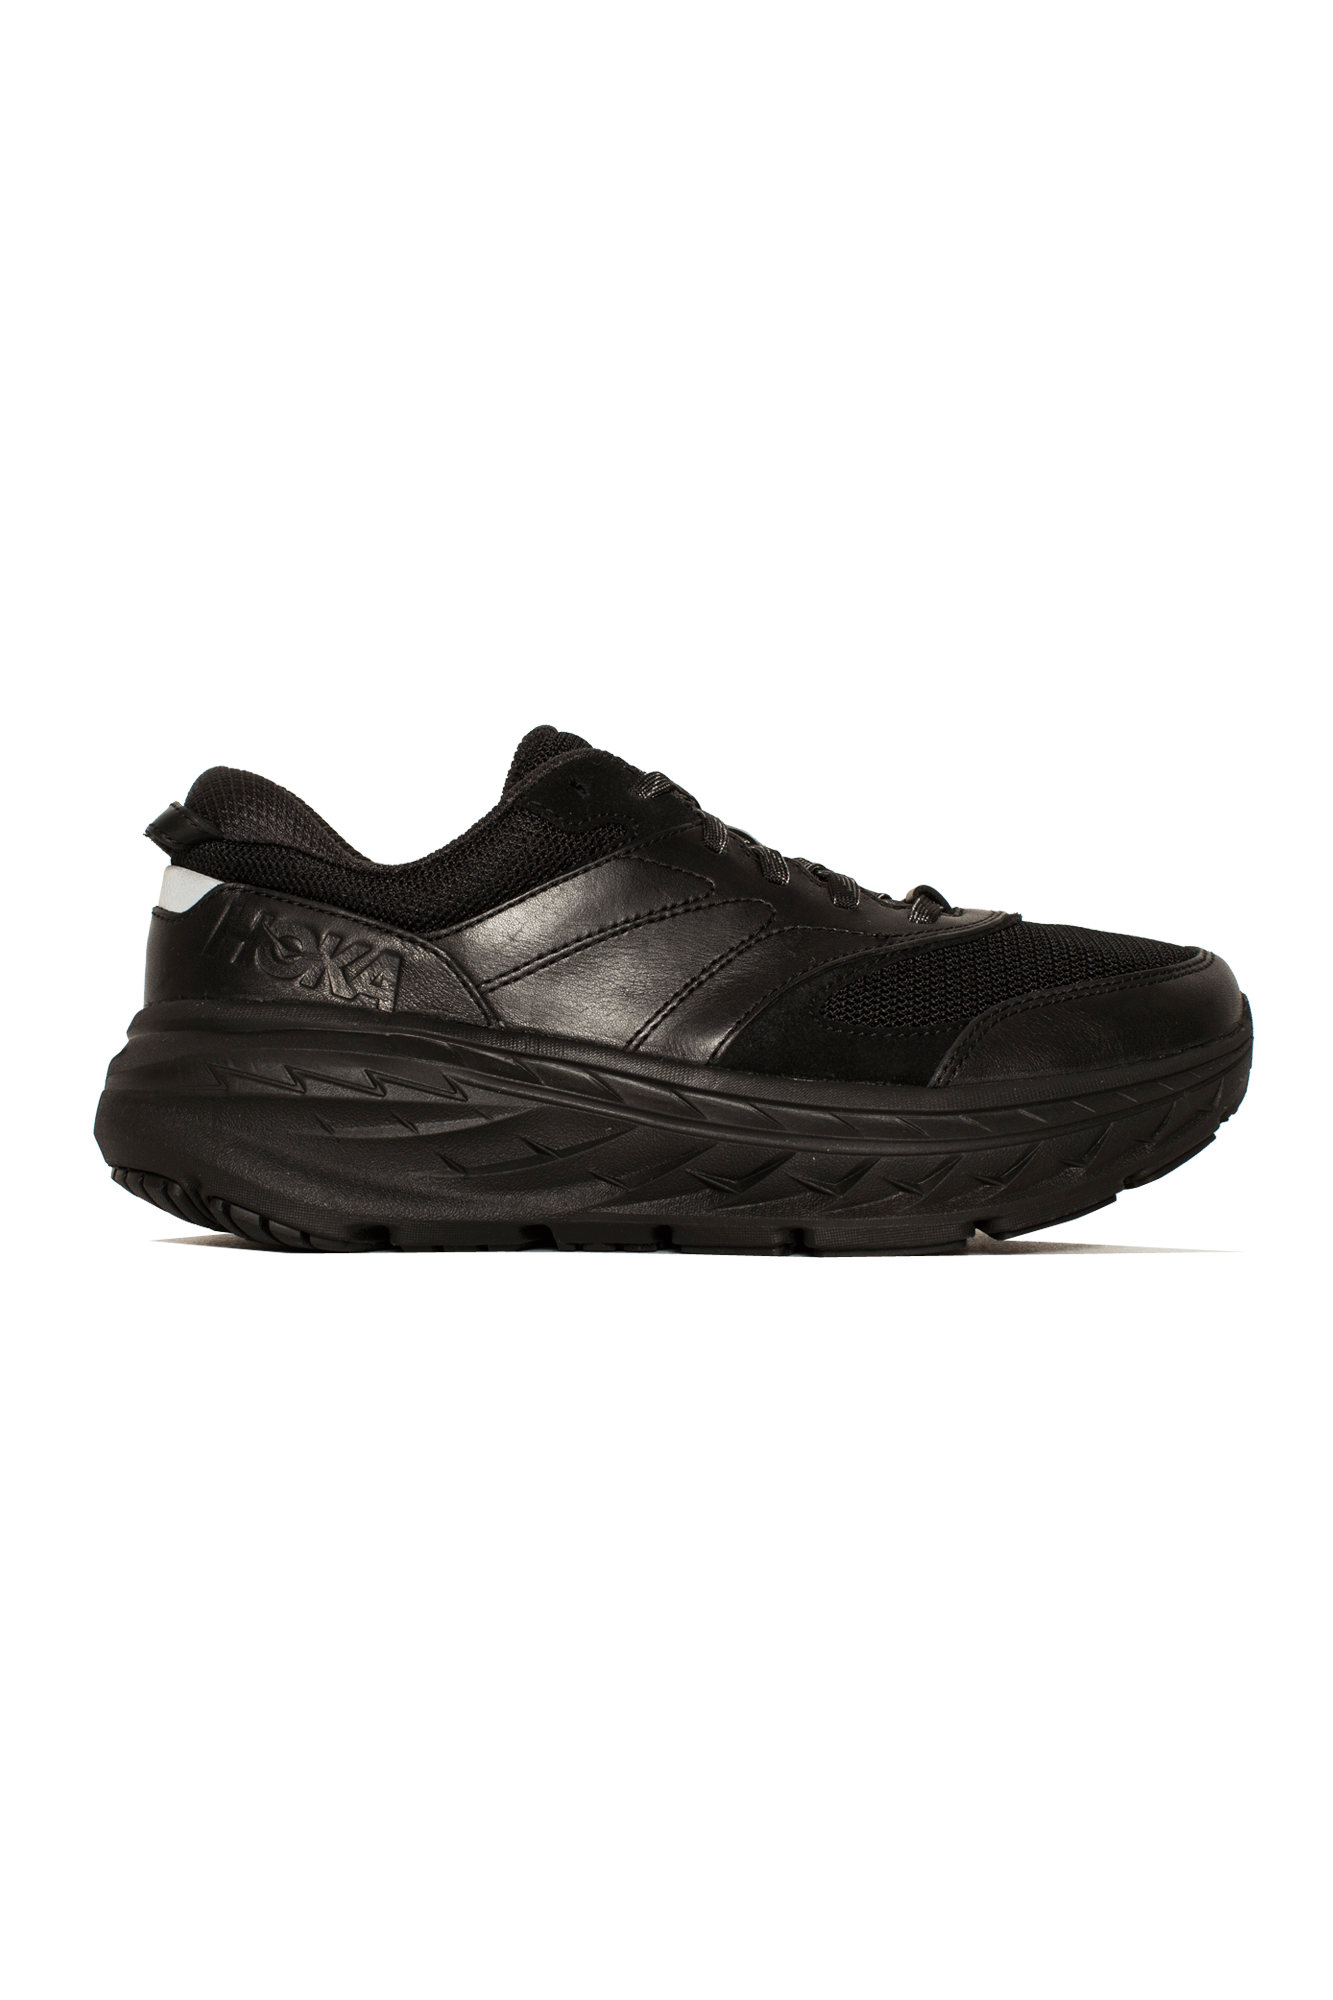 Hoka One One Sneakers Bondi x Opening Ceremony Black HK.1111597#000#BBLC#6 - One Block Down